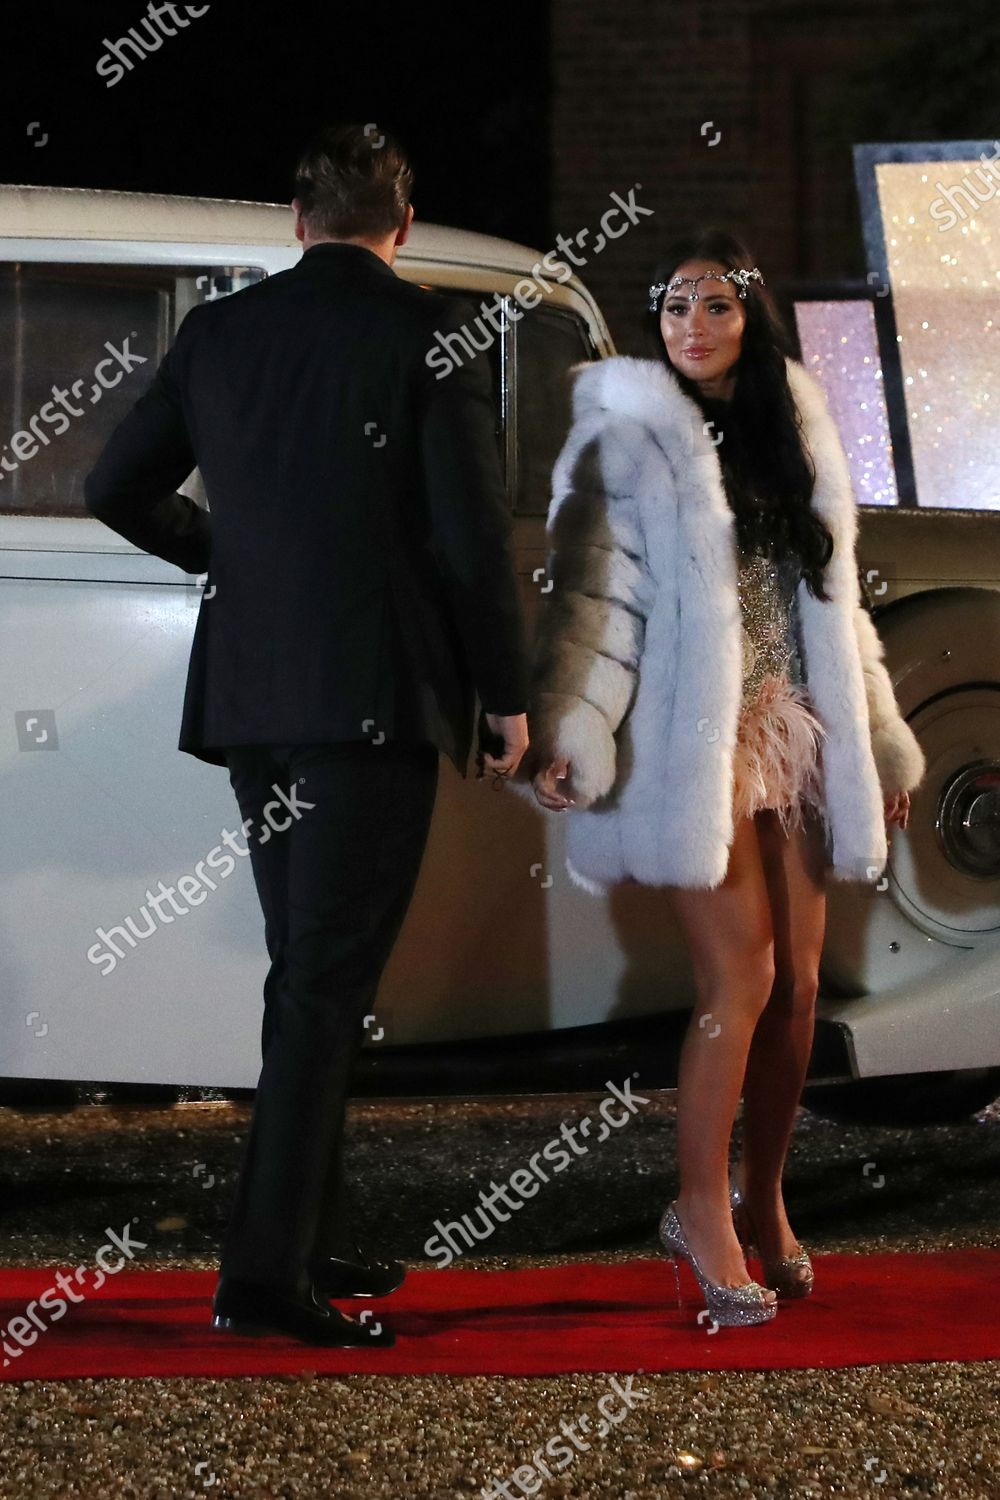 Stock photo of Exclusive - 'The Only Way is Essex' TV show finale filming, UK - 14 Oct 2020